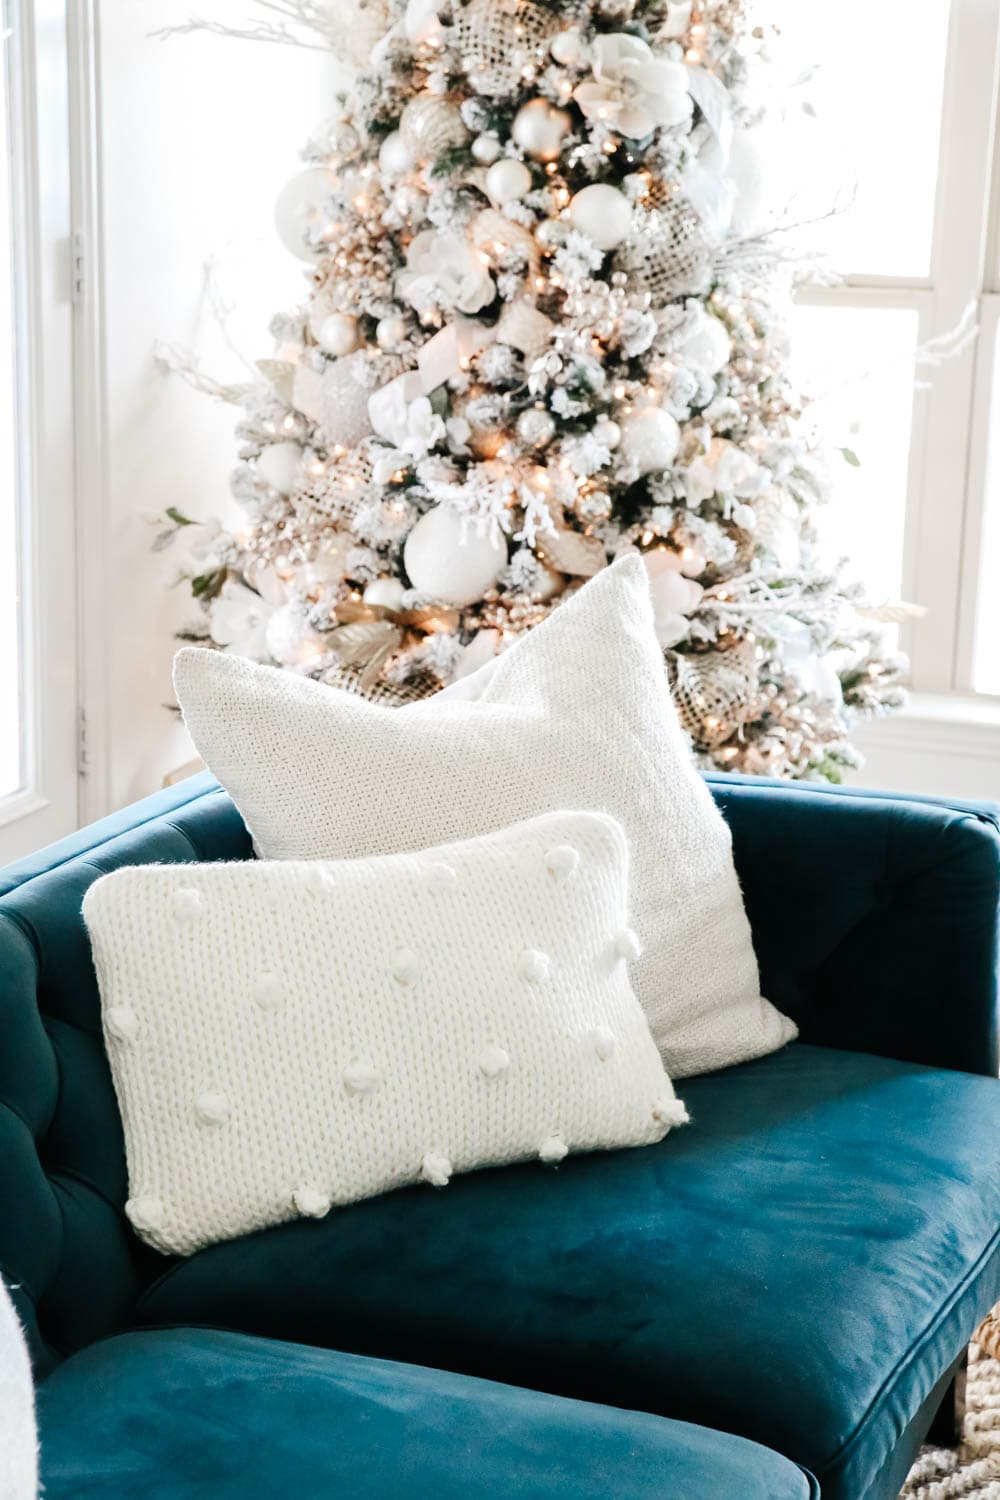 Beautiful pom pom pillow and neutral Christmas tree paired with this blue velvet sofa for the holidays. #ABlissfulNest #christmasdecorating #christmasdecorideas